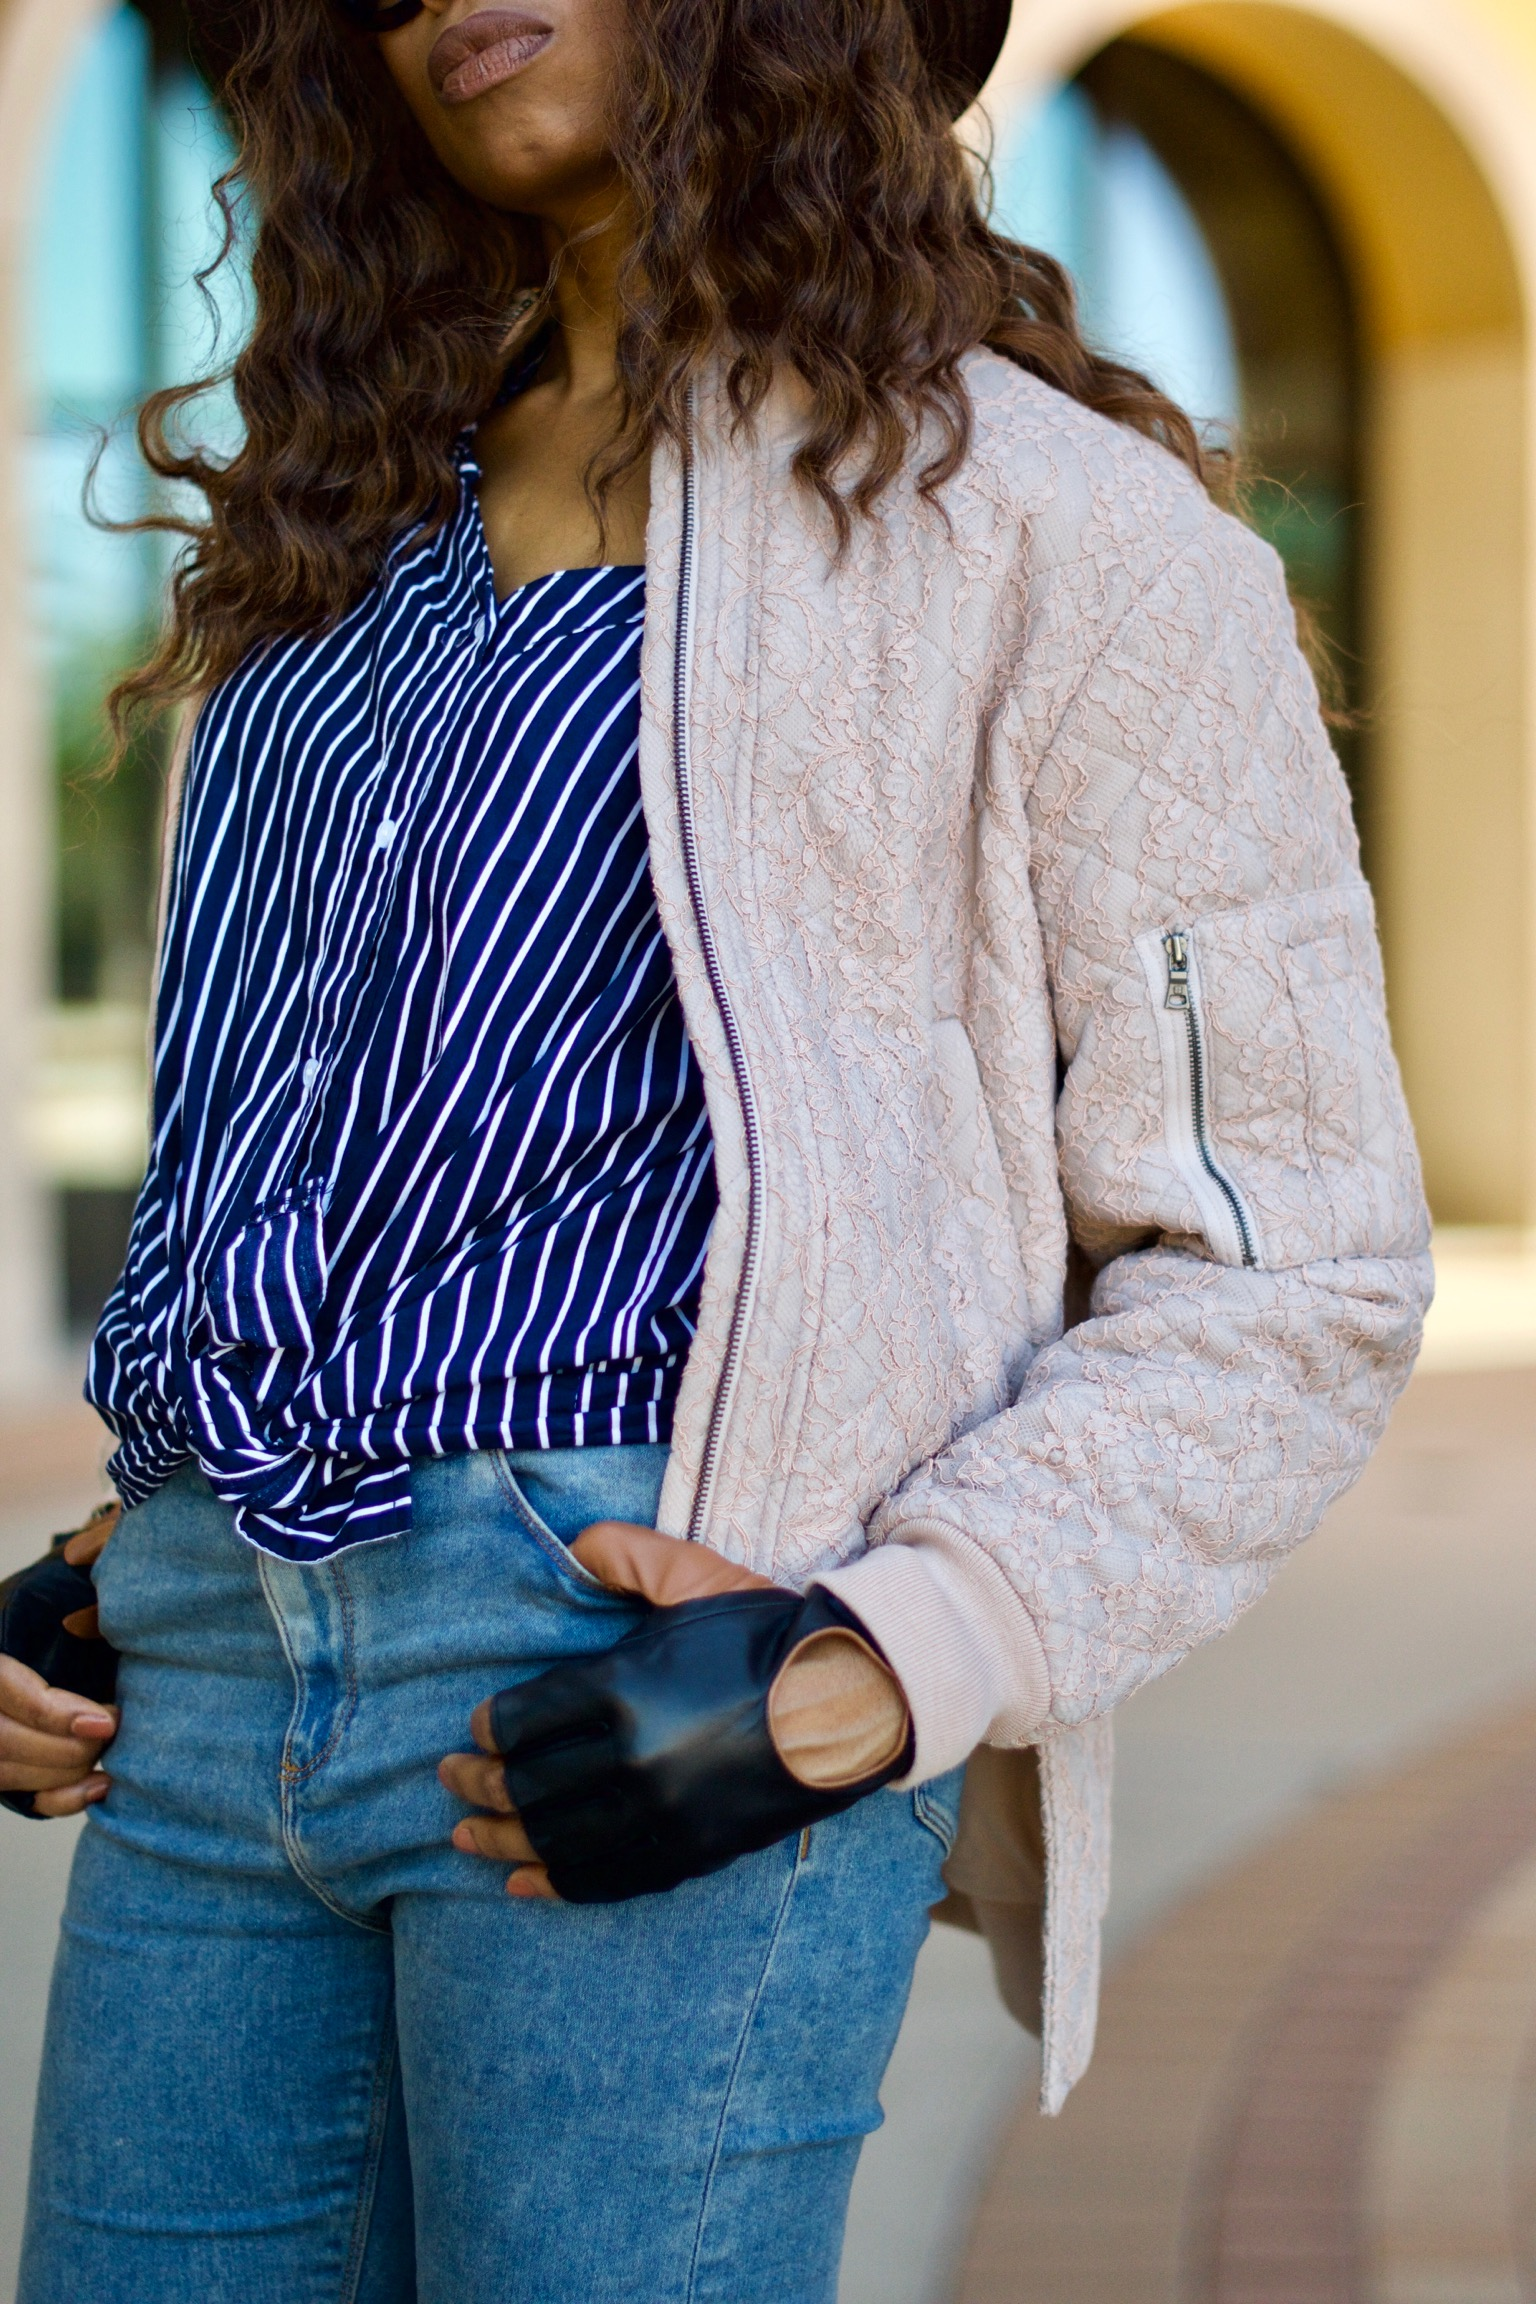 Deconstructed off shoulder shirt + Bomber Jacket Posted by Vivellefashion